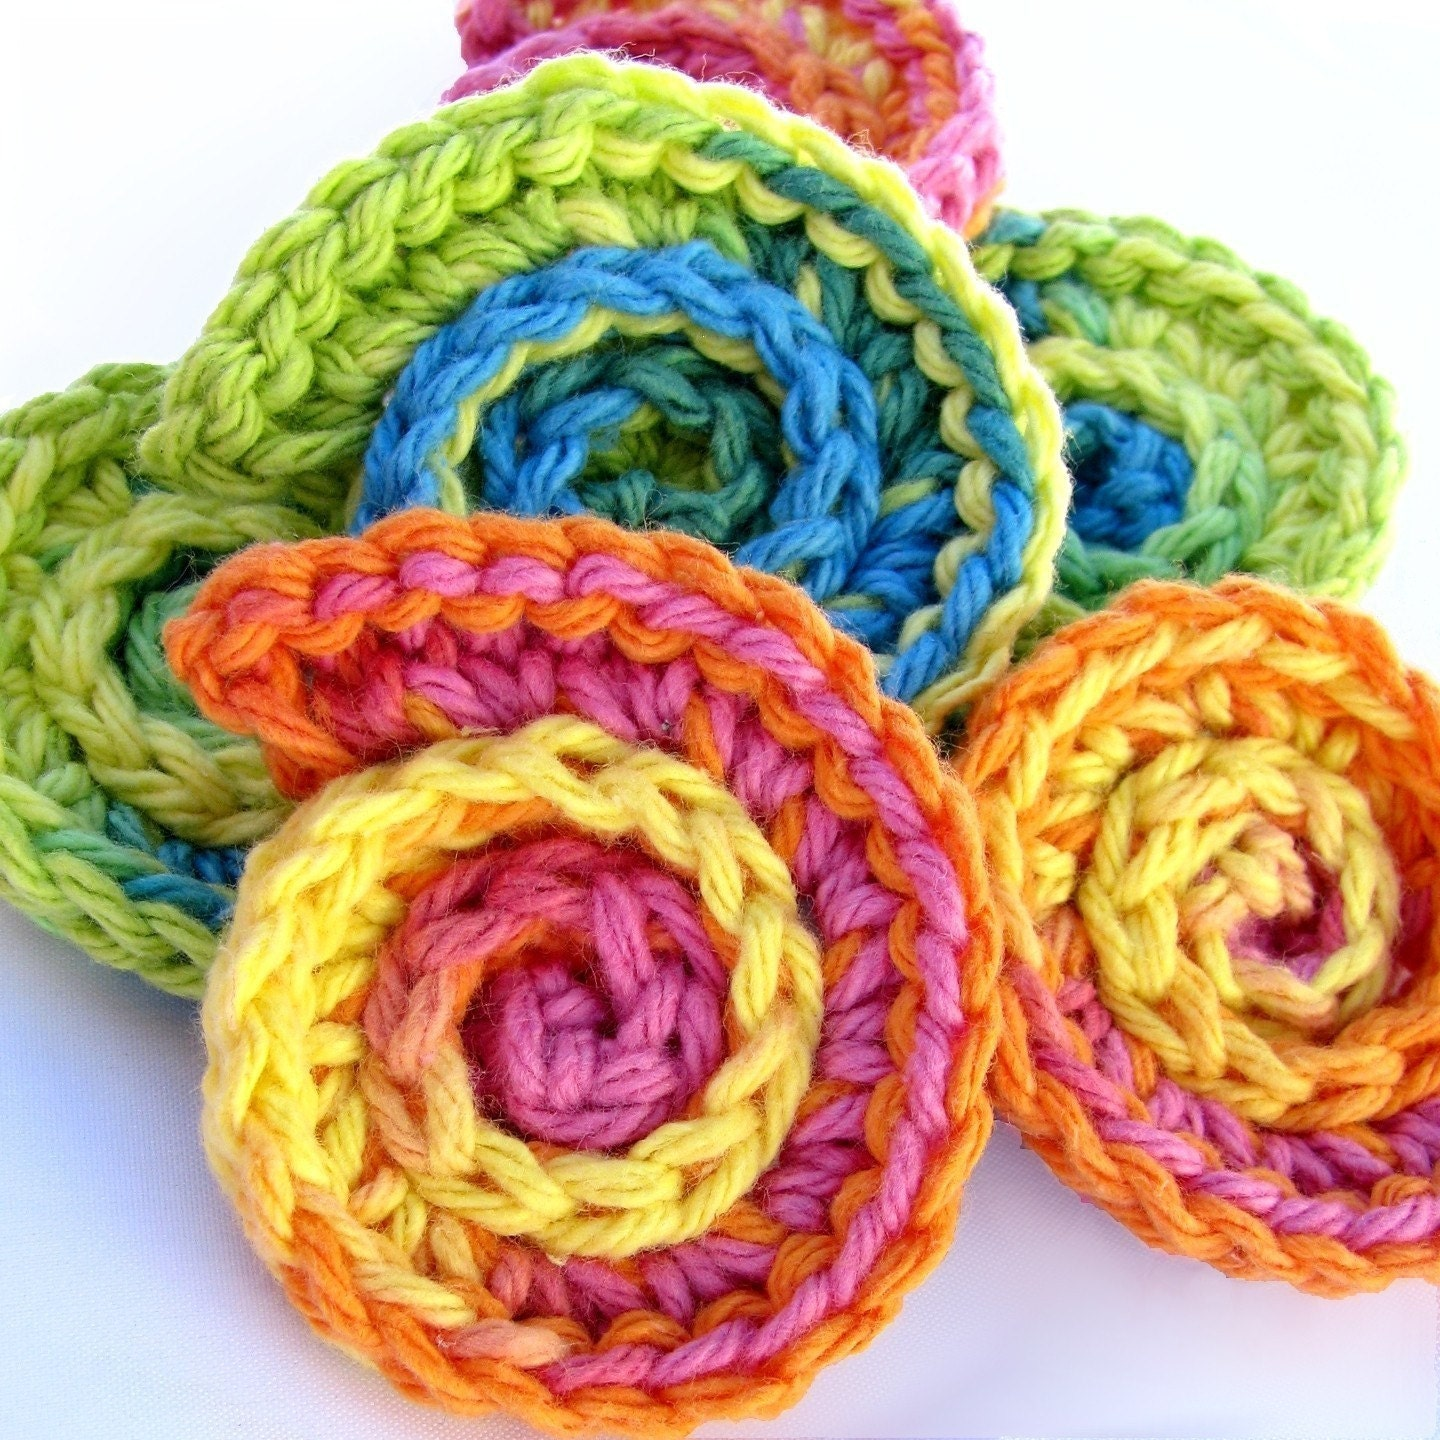 CROCHET SCRUBBIE PATTERNS ? Free Patterns